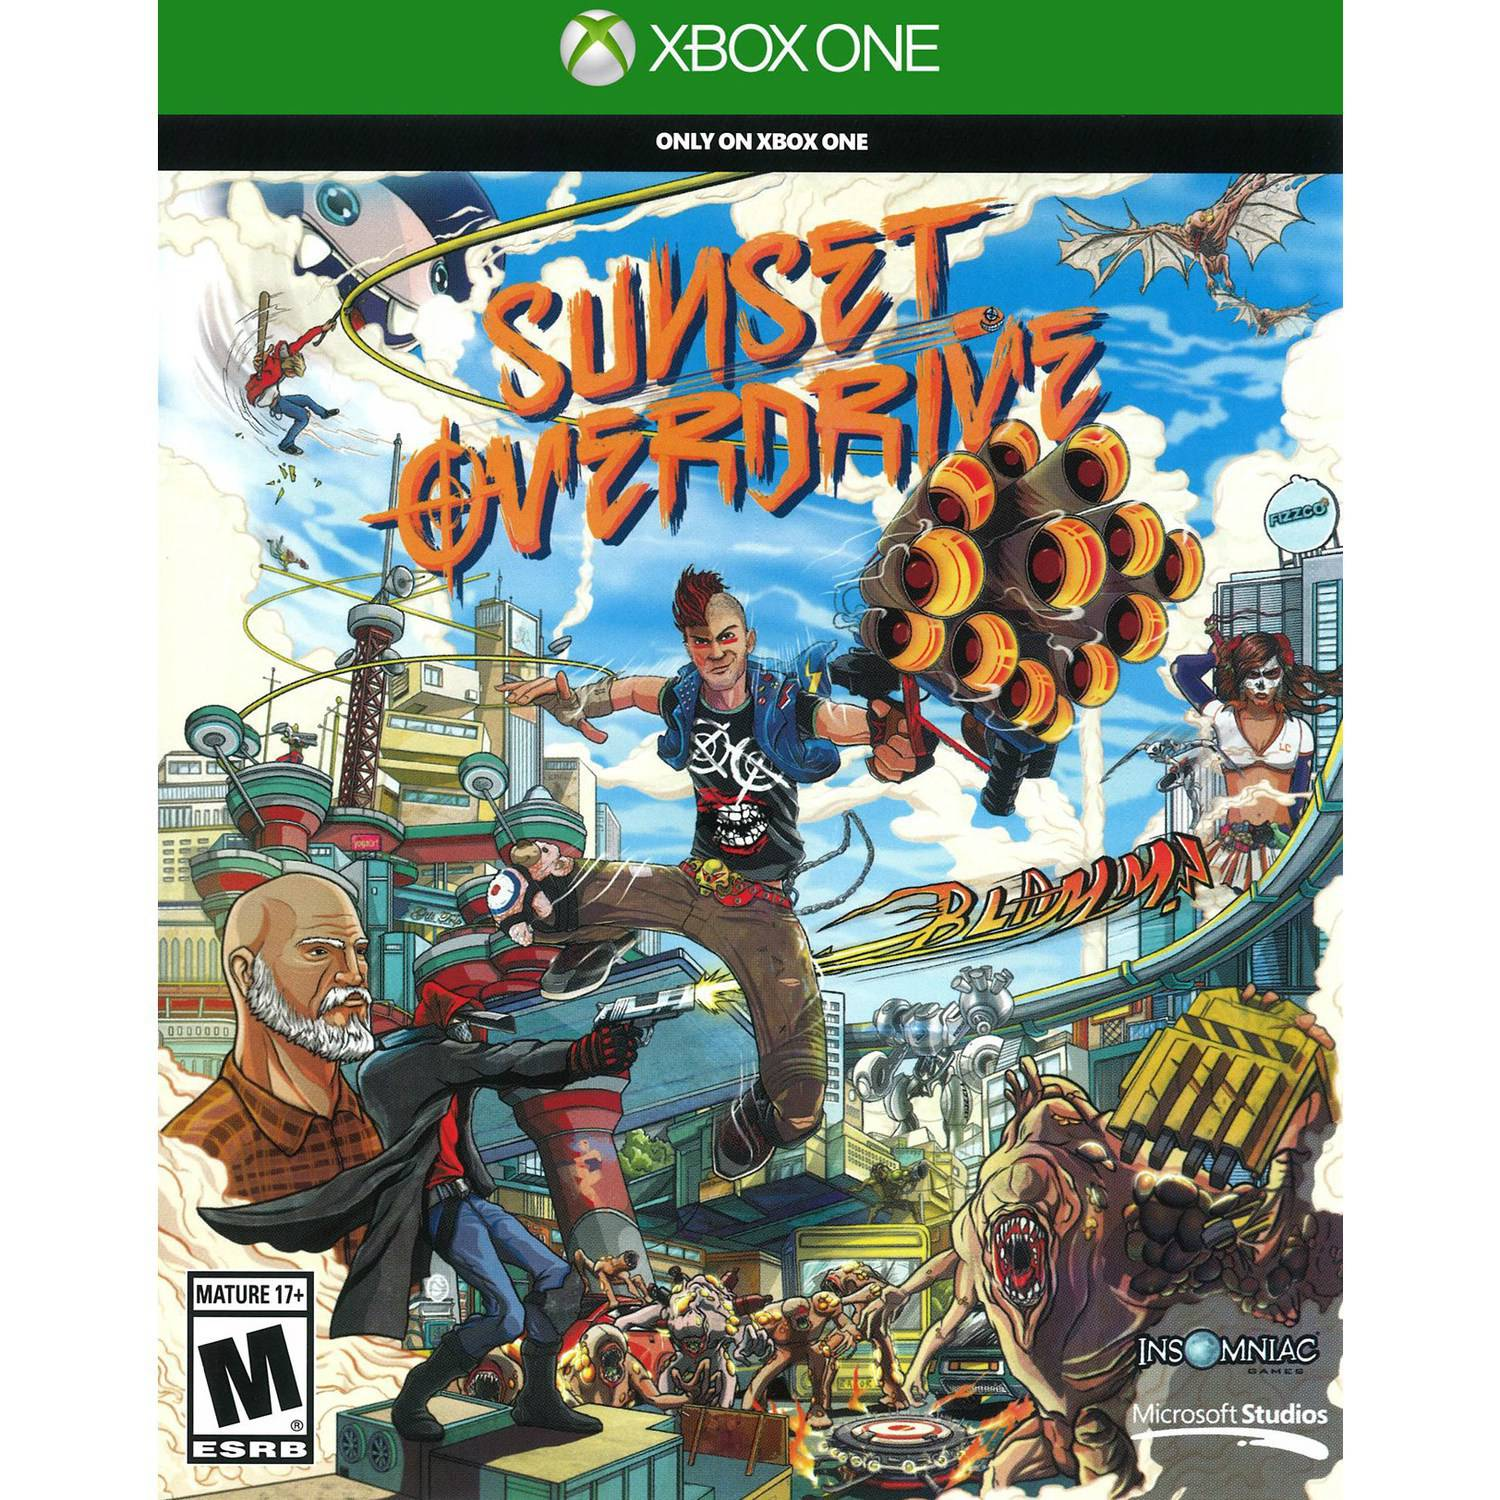 Sunset Overdrive (Xbox One) - Pre-Owned